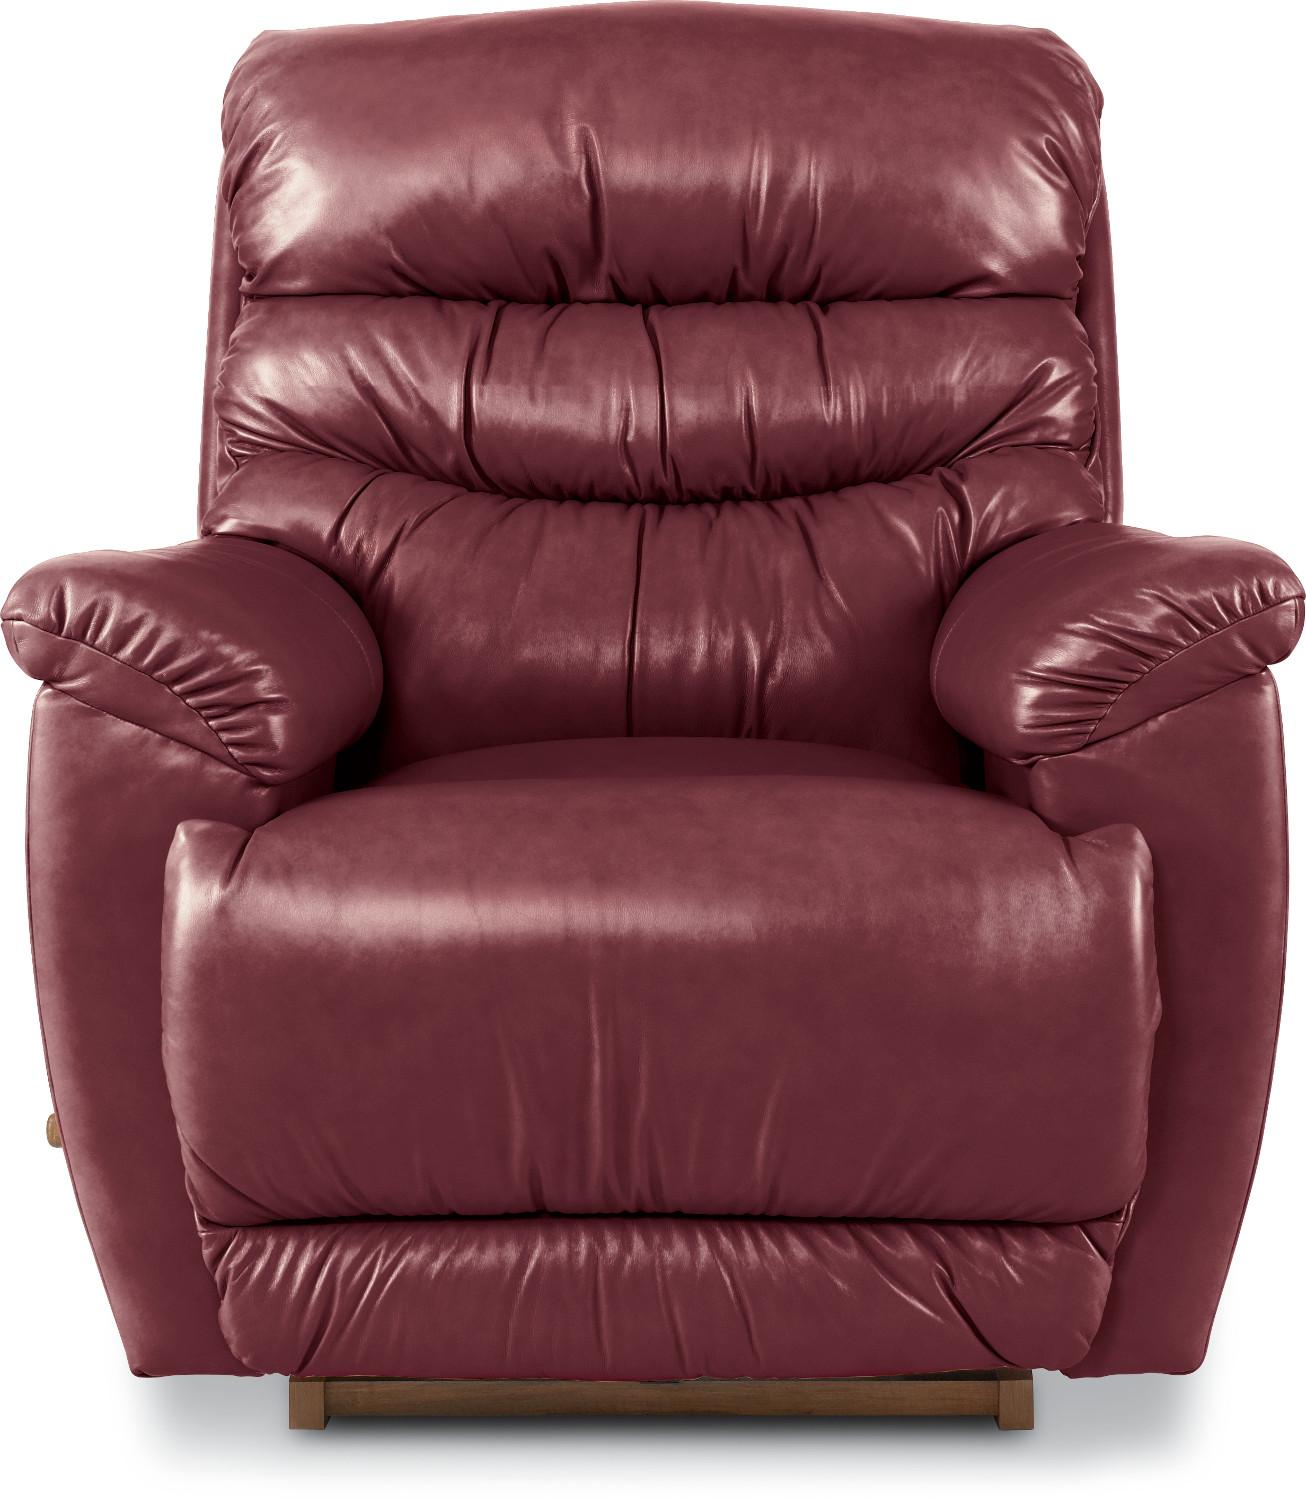 Recliner Rocking Chair Recliners Joshua Reclina Rocker Reclining Chair By La Z